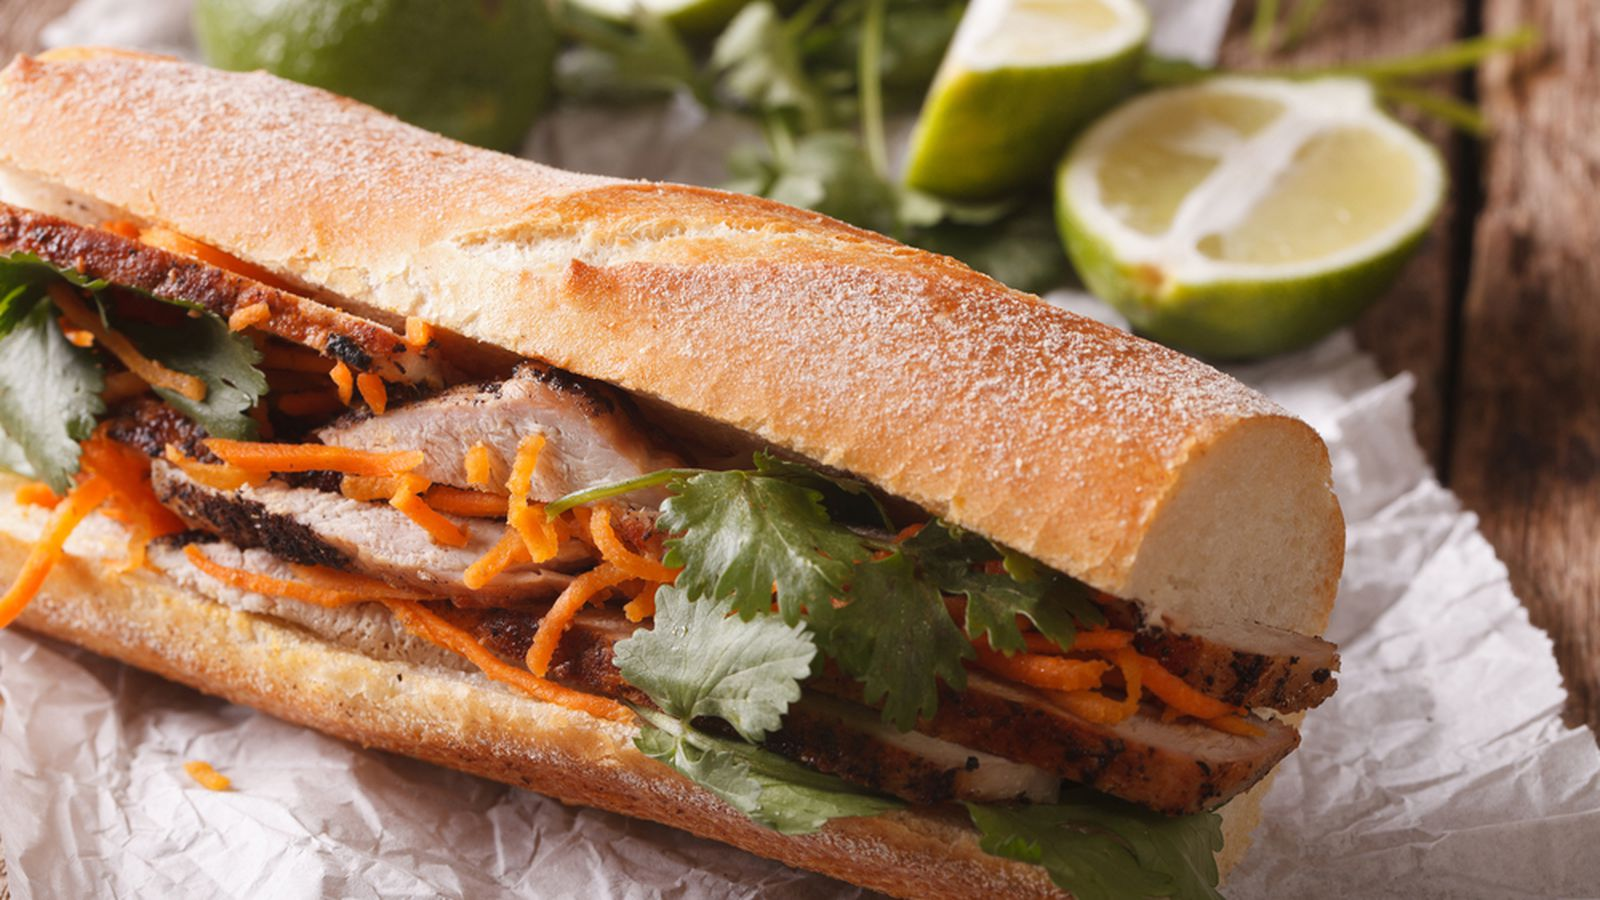 Where to Find Denver's Best Bánh Mi Sandwiches